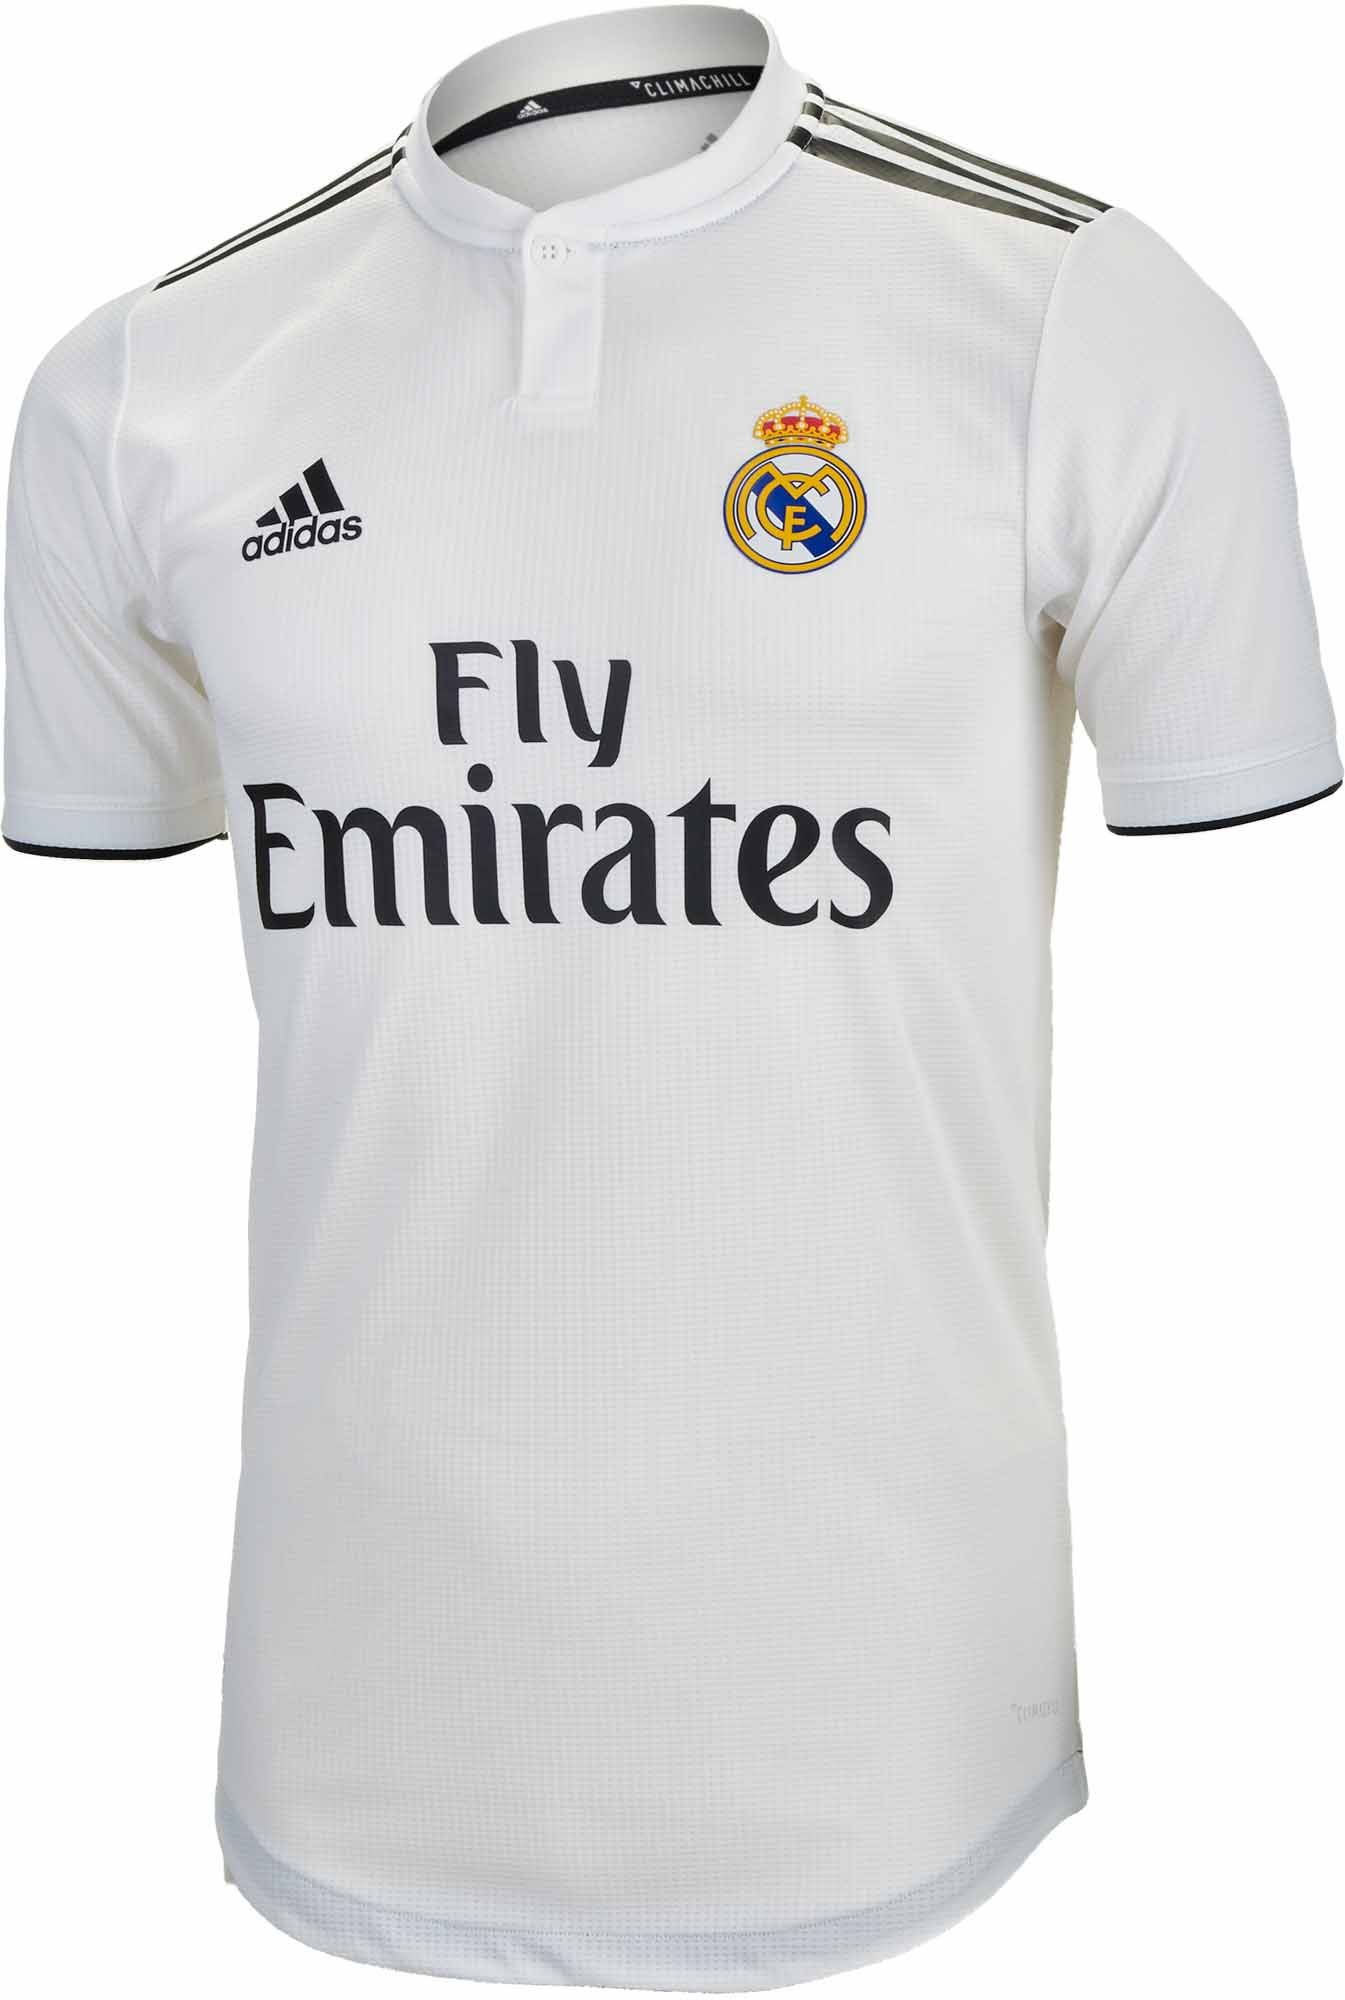 f9f089c3f 2018 19 adidas Real Madrid Authentic Home Jersey. Fresh at www.soccerpro.com